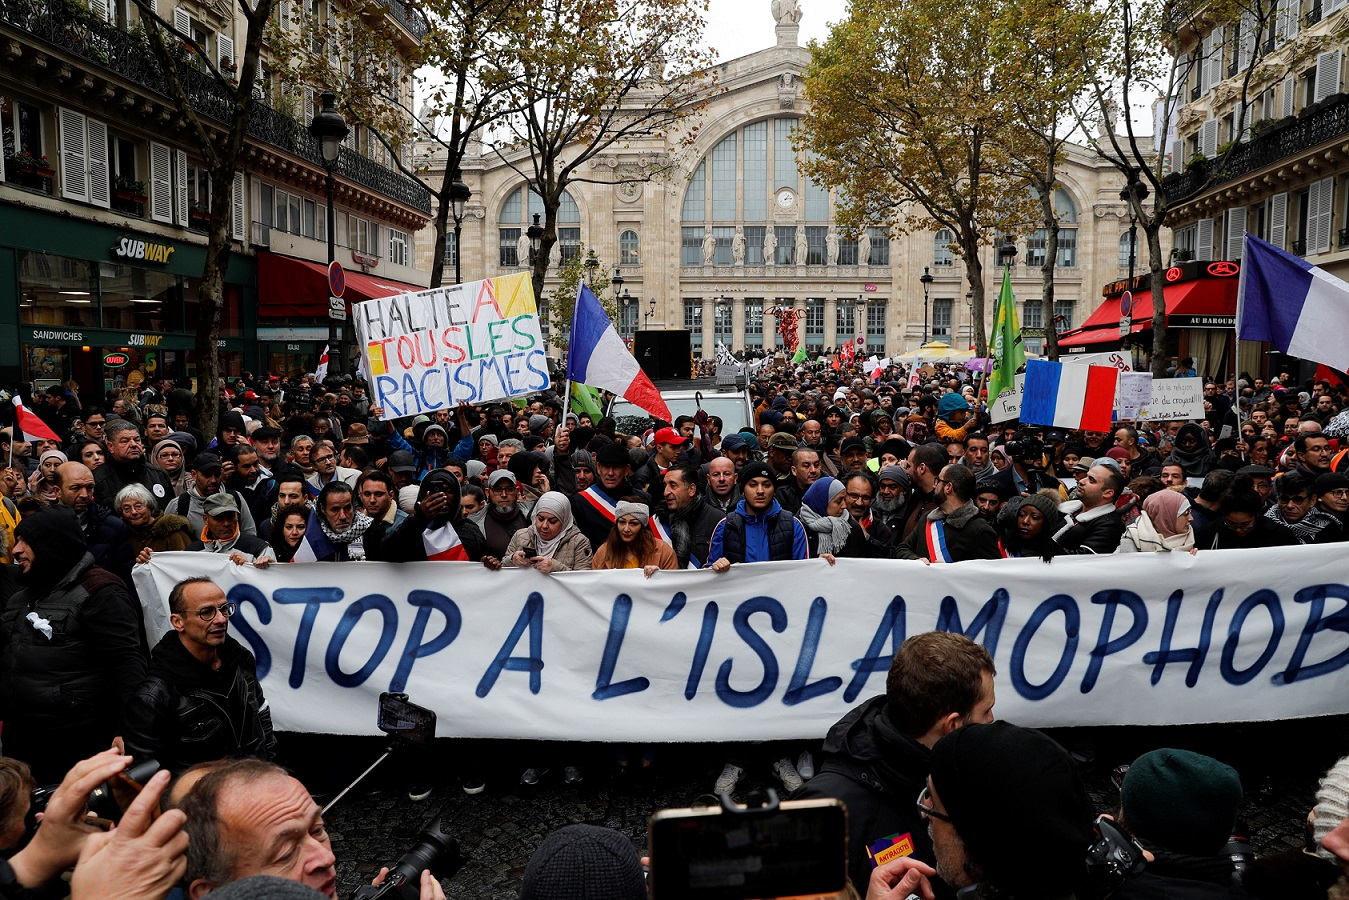 A demonstration against Islamophobia in Paris on 10 November 2019 (AFP)